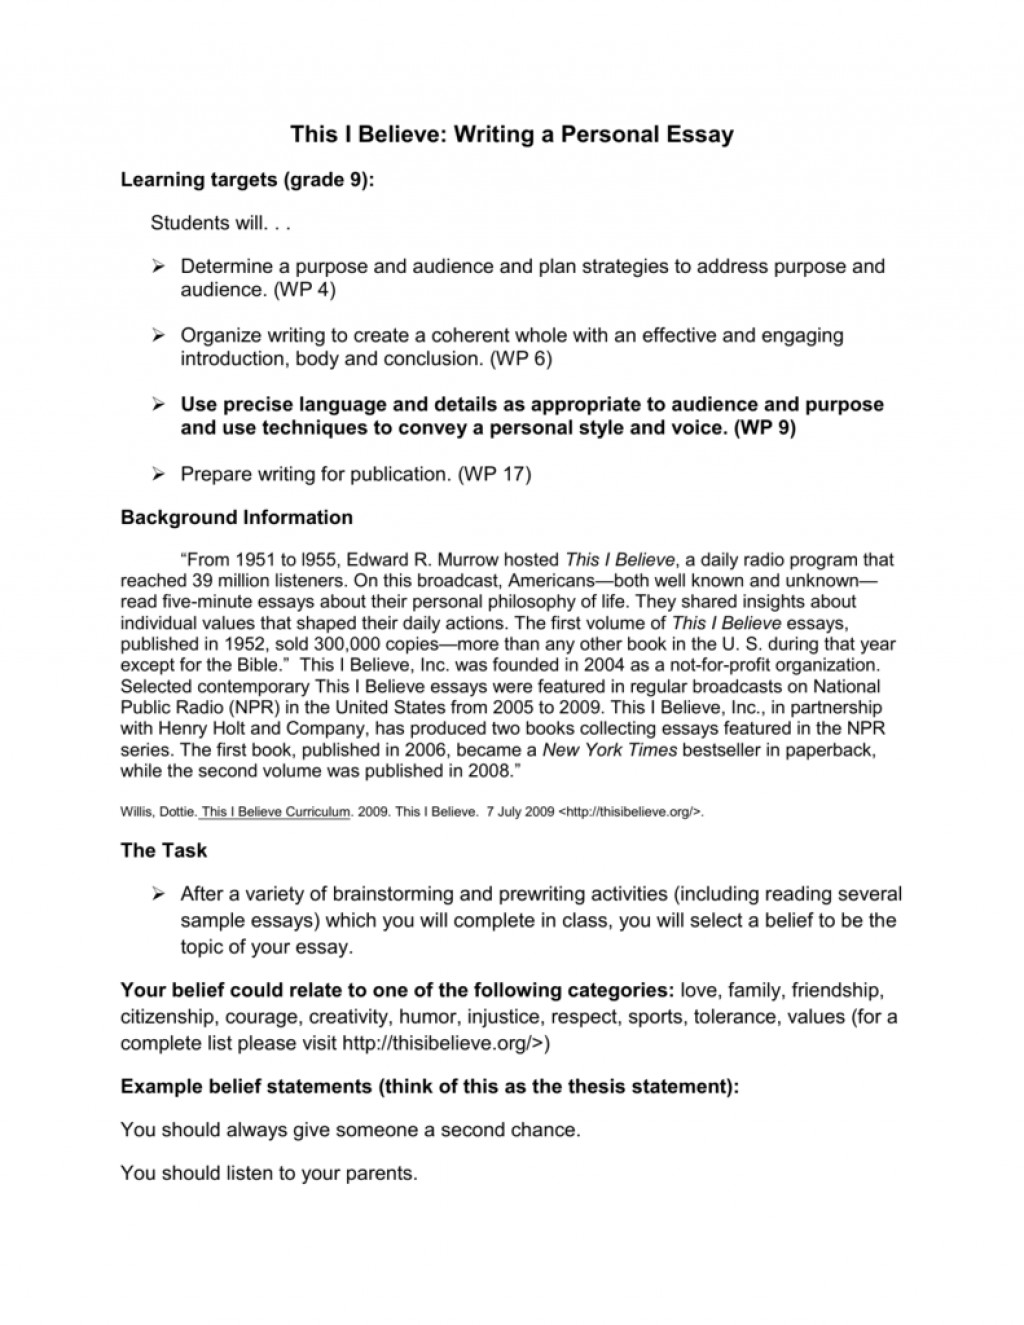 002 This I Believe Essay Examples Example 006750112 1 Stupendous Npr College Large